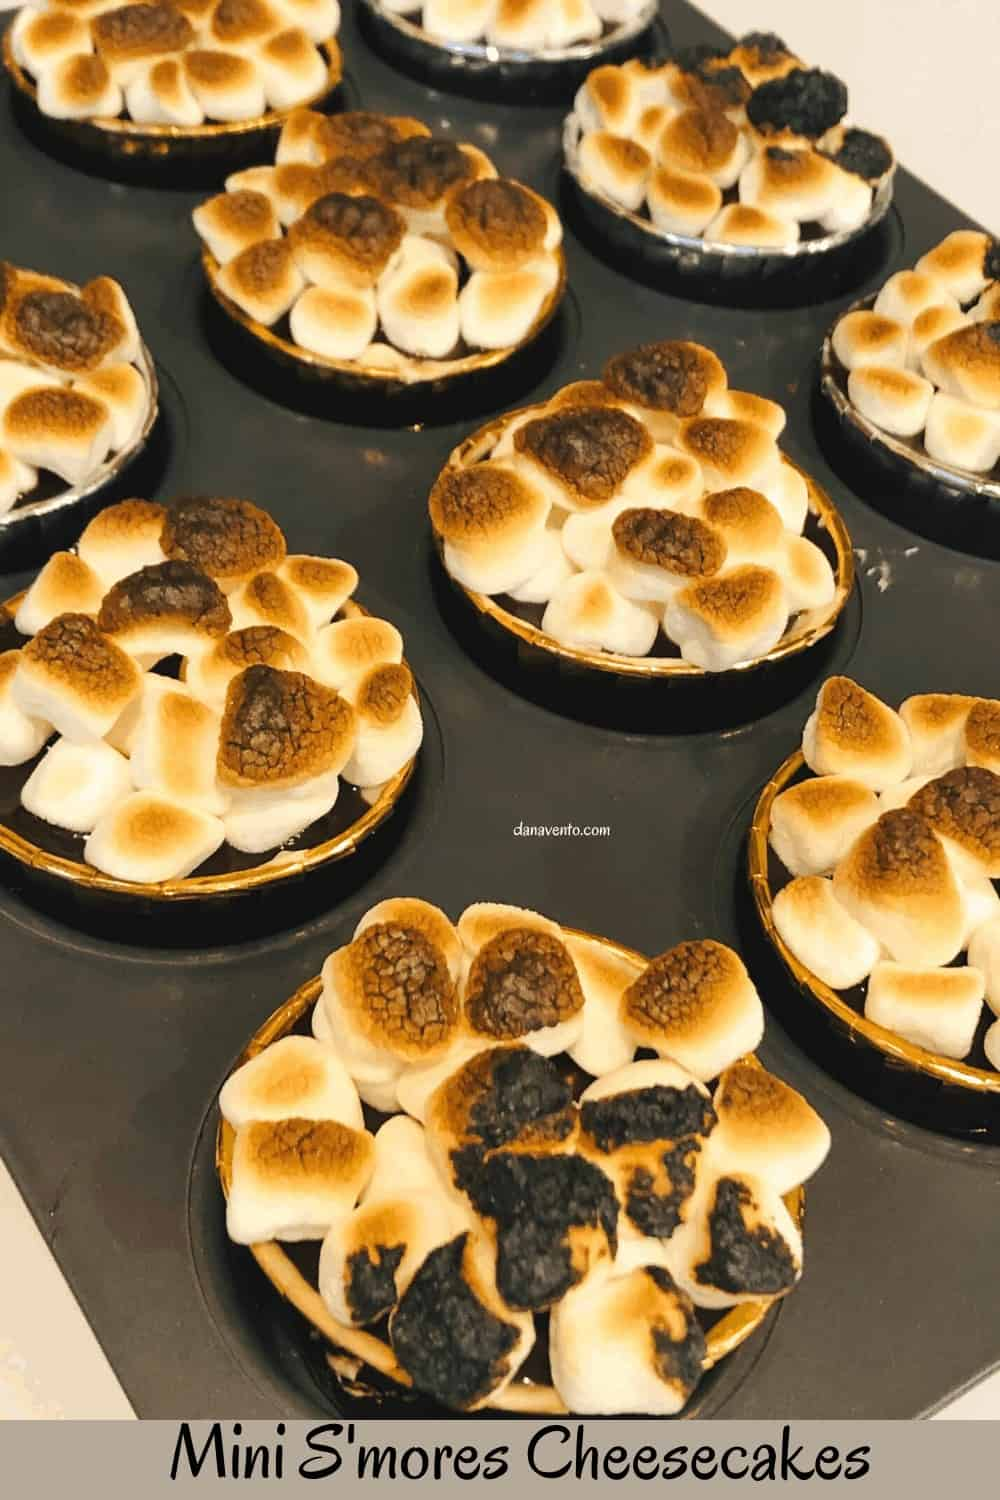 S'mores in pan with toasted marshmallows